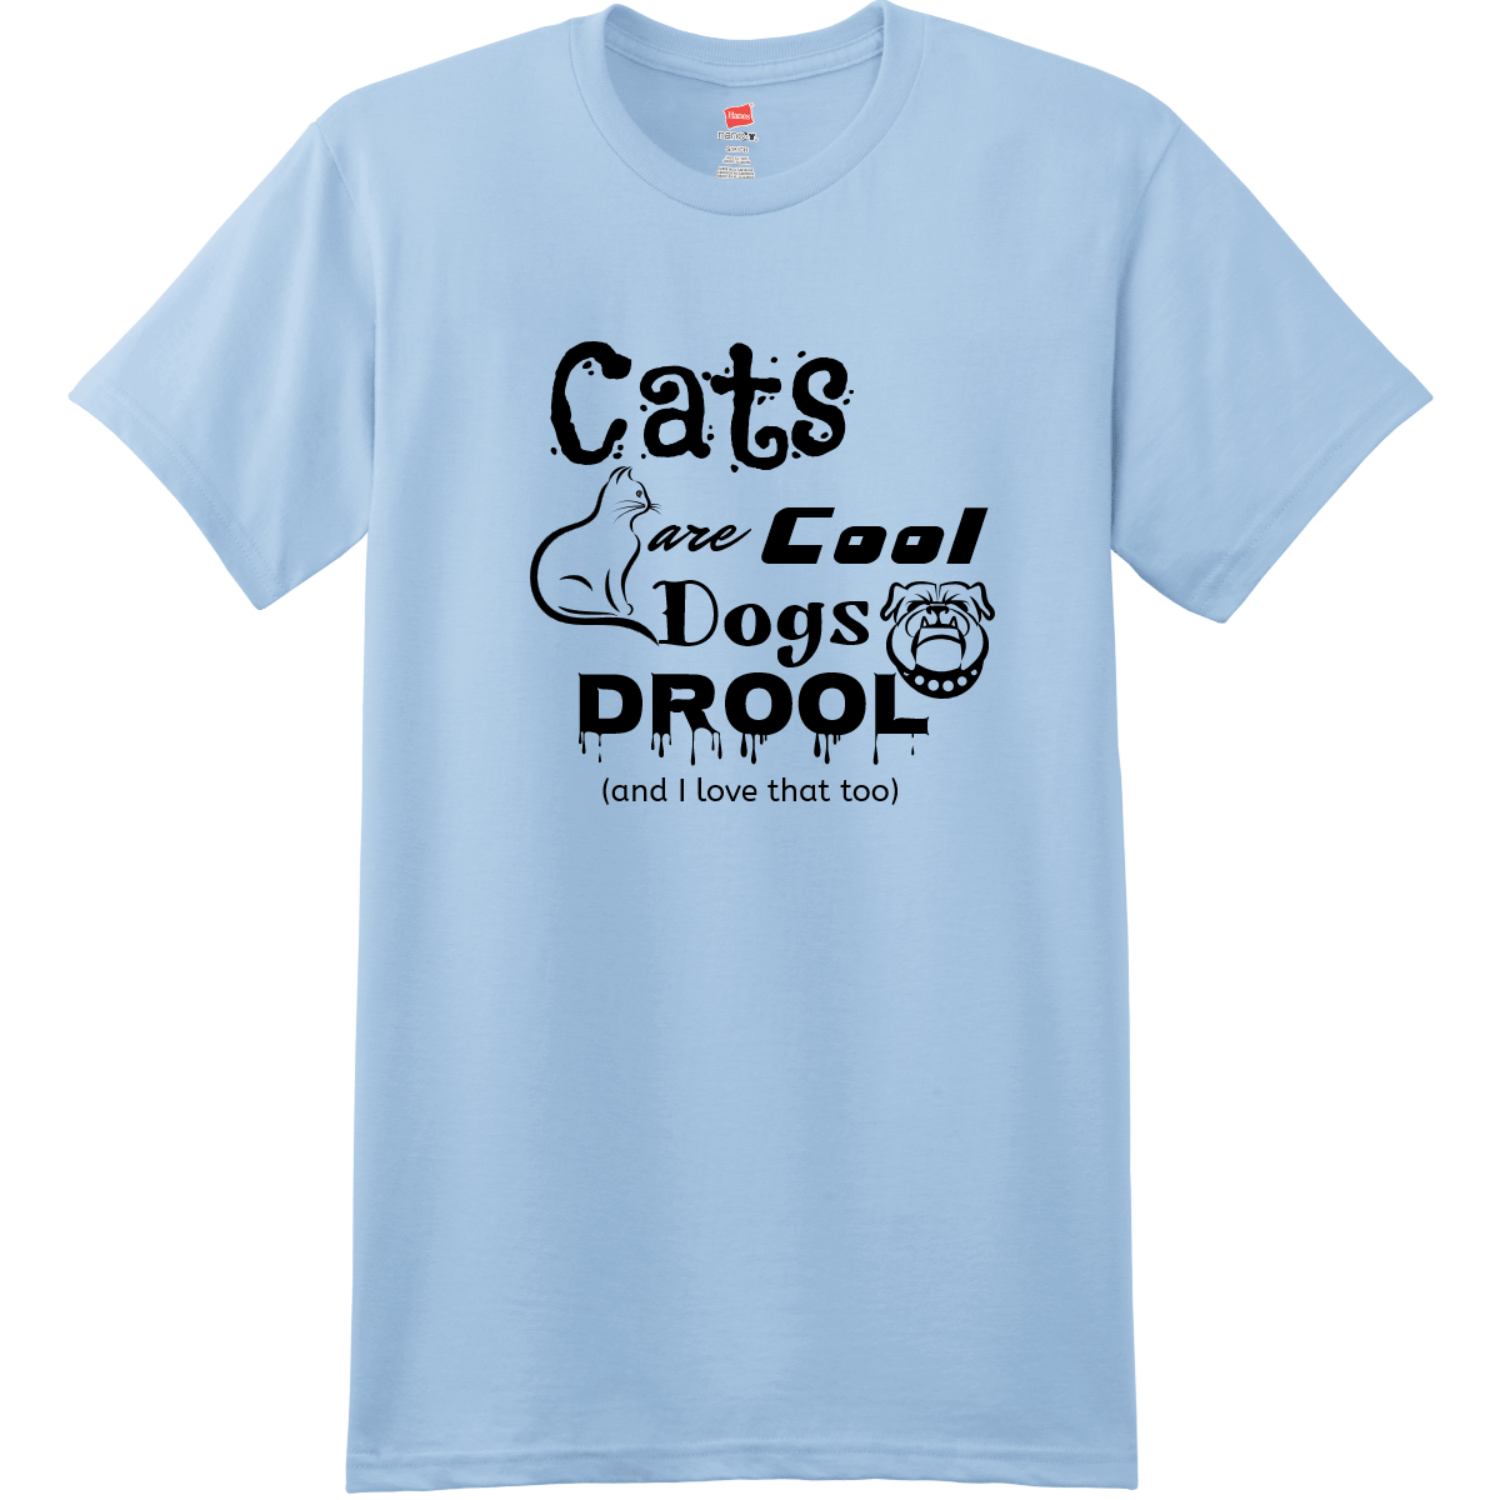 Cats Are Cool Dogs Drool T Shirt Light Blue Hanes Nano 4980 Ringspun Cotton T Shirt